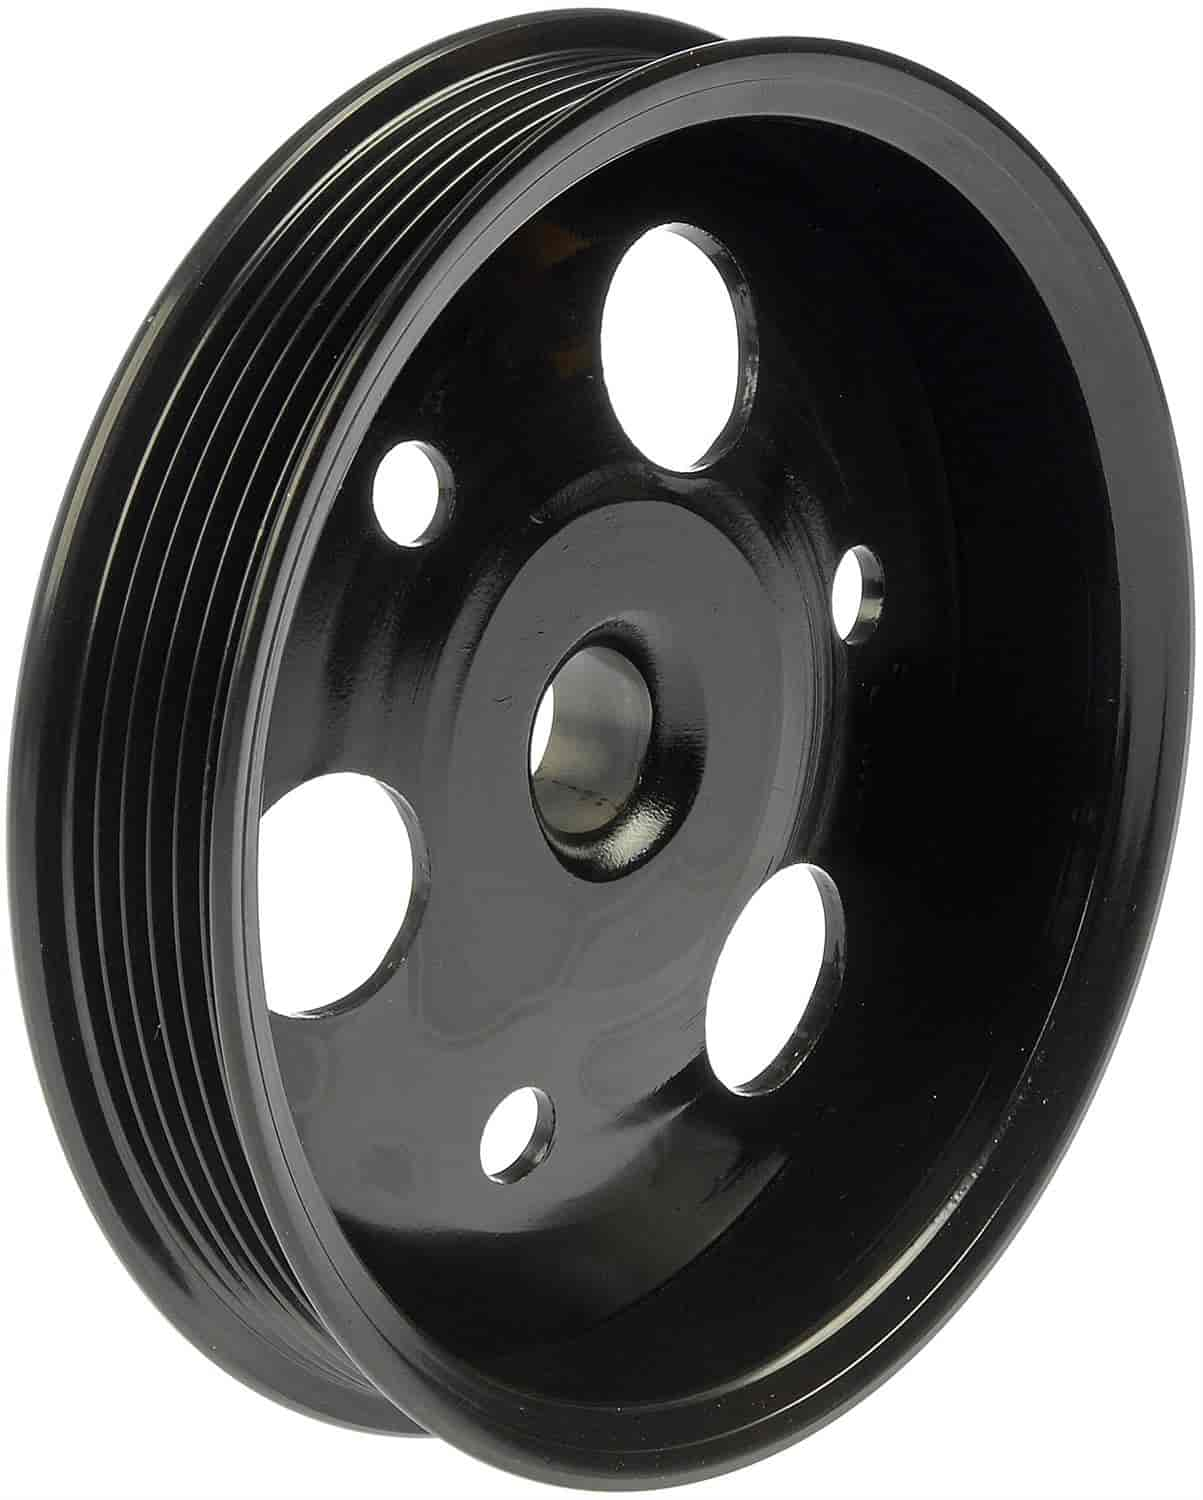 Dorman Products 300-130 - Dorman Power Steering Pulleys